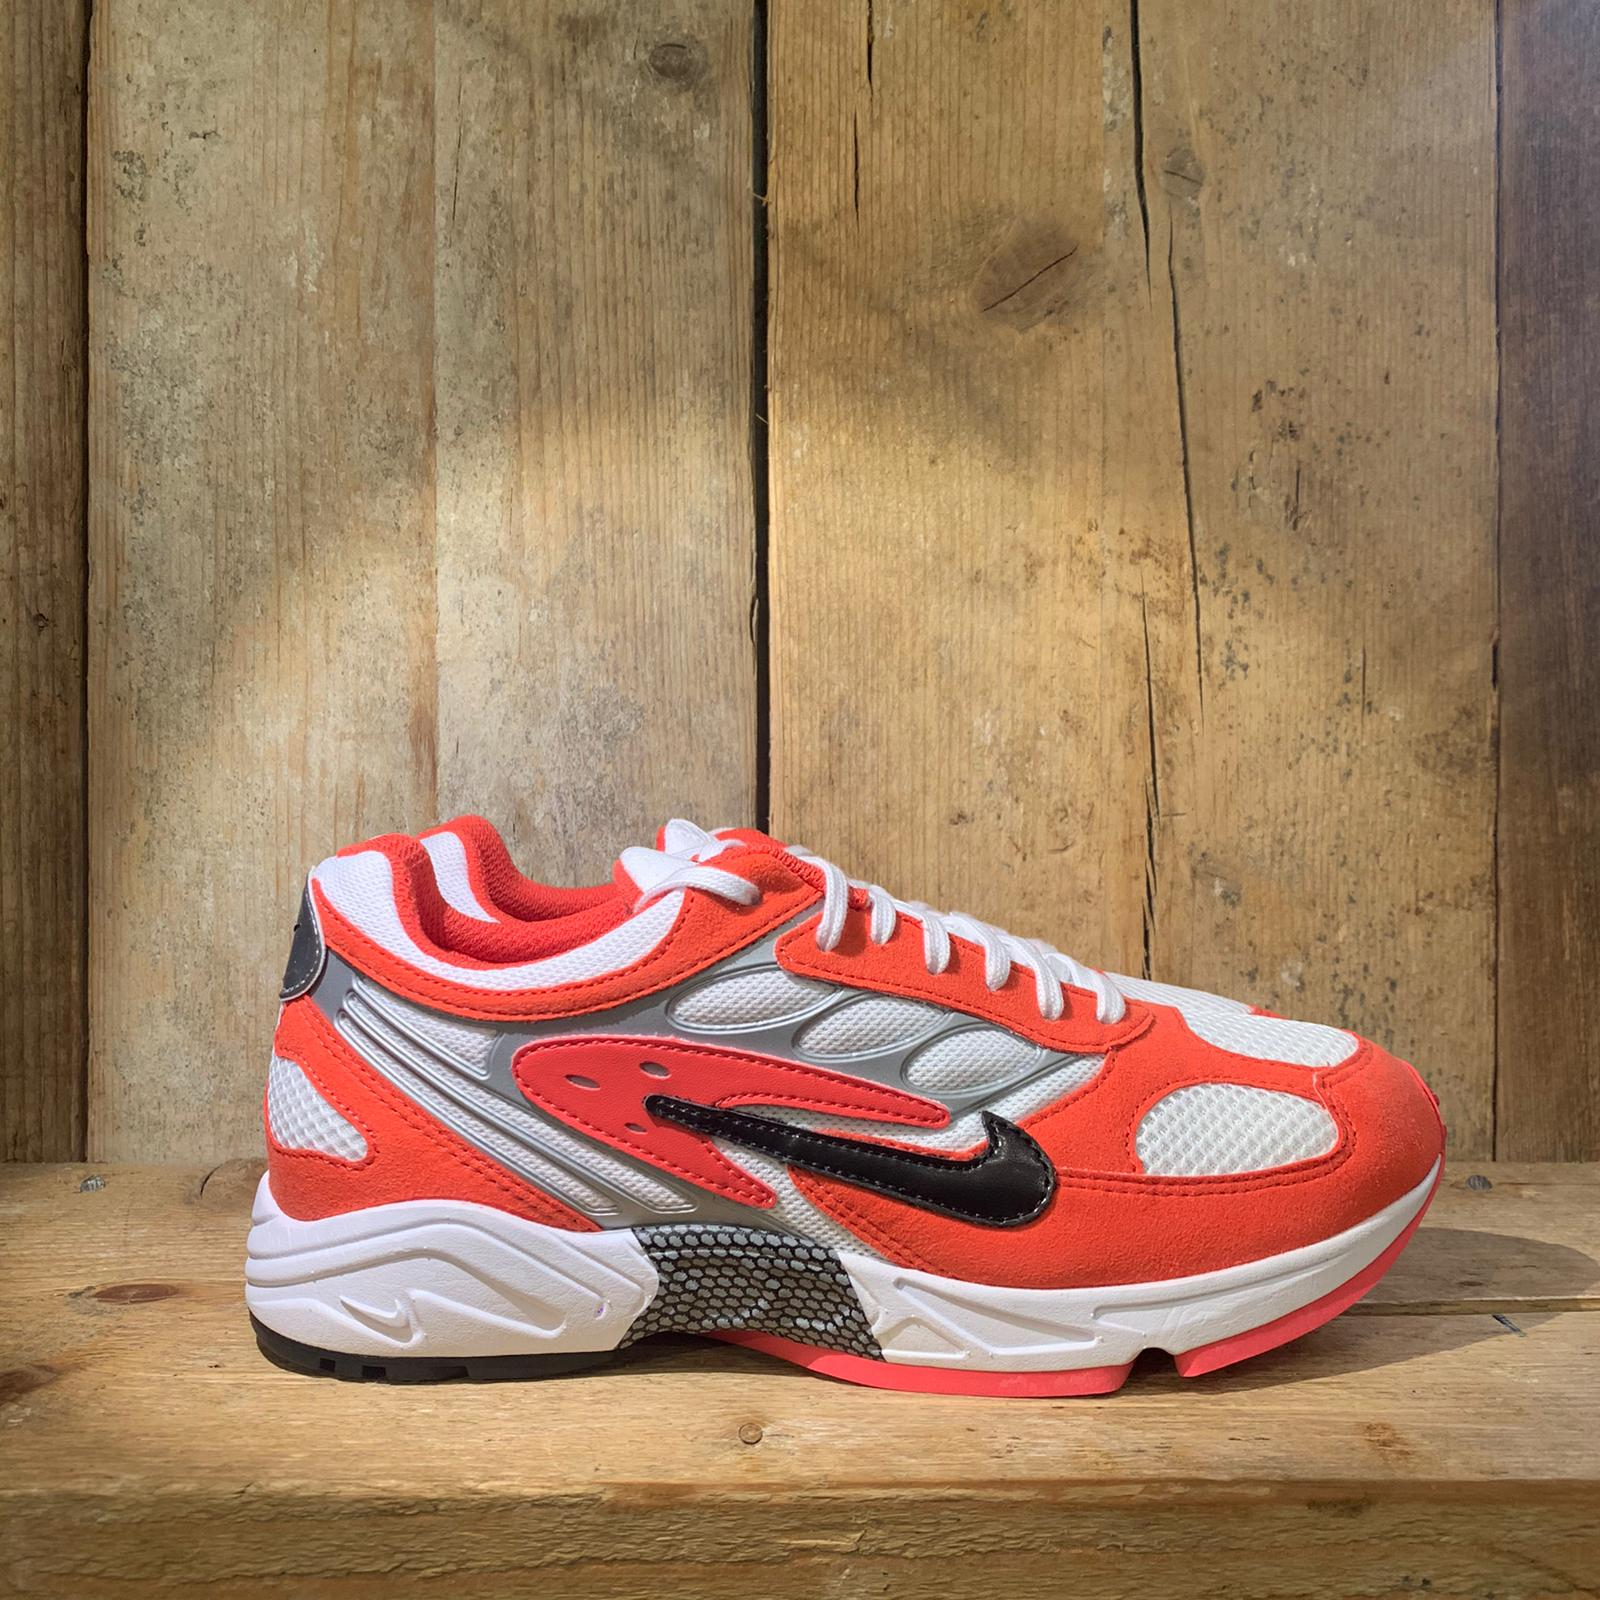 Scarpa Nike Air Ghost Racer Rossa Bianca e Argento